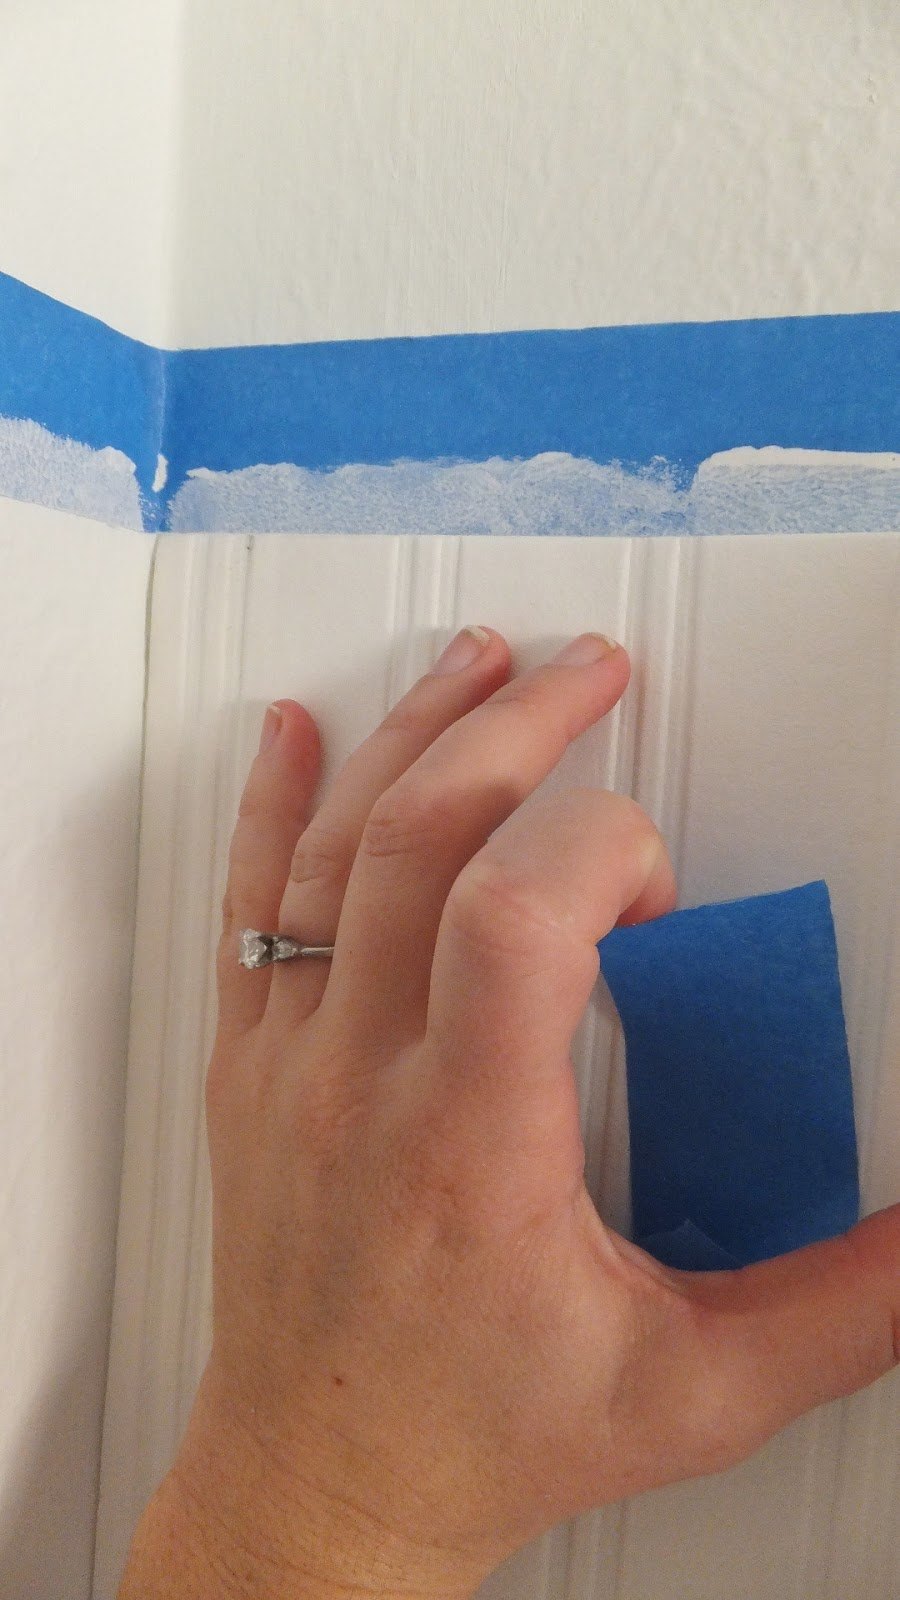 how to match the white Wall Doctor Beadboard Wallpaper to the blue wall